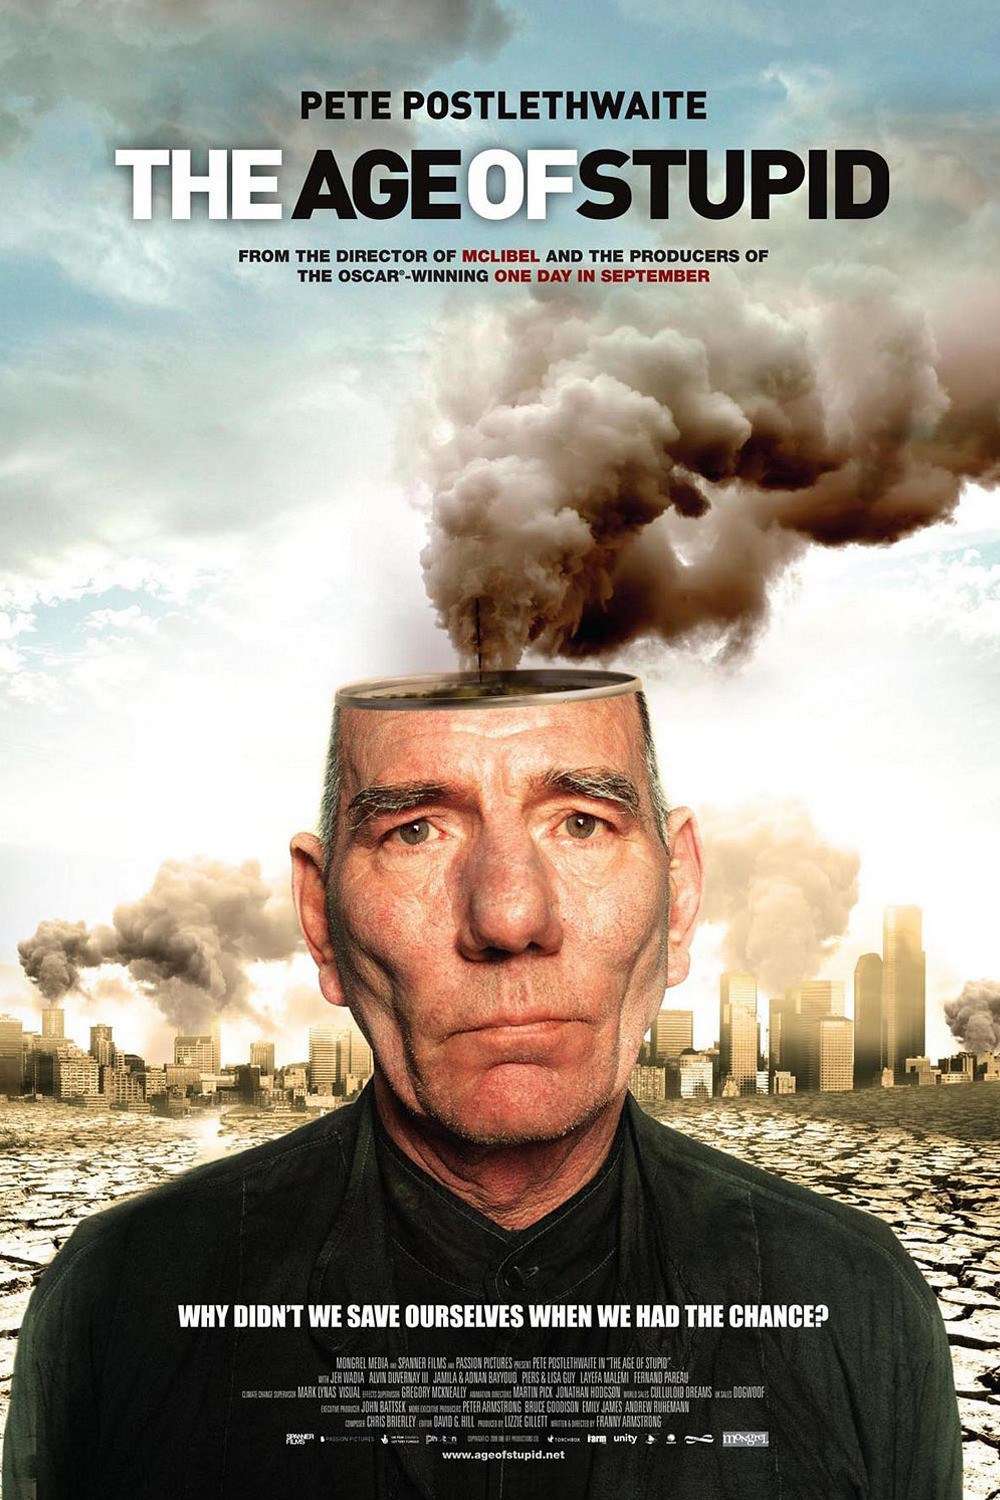 age of stupid review Movie the age of stupid a variety of interweaving narratives connected by the theme of the explotation of the oil business, overseen by an old man in 2055, despairing of early 21st century policies.